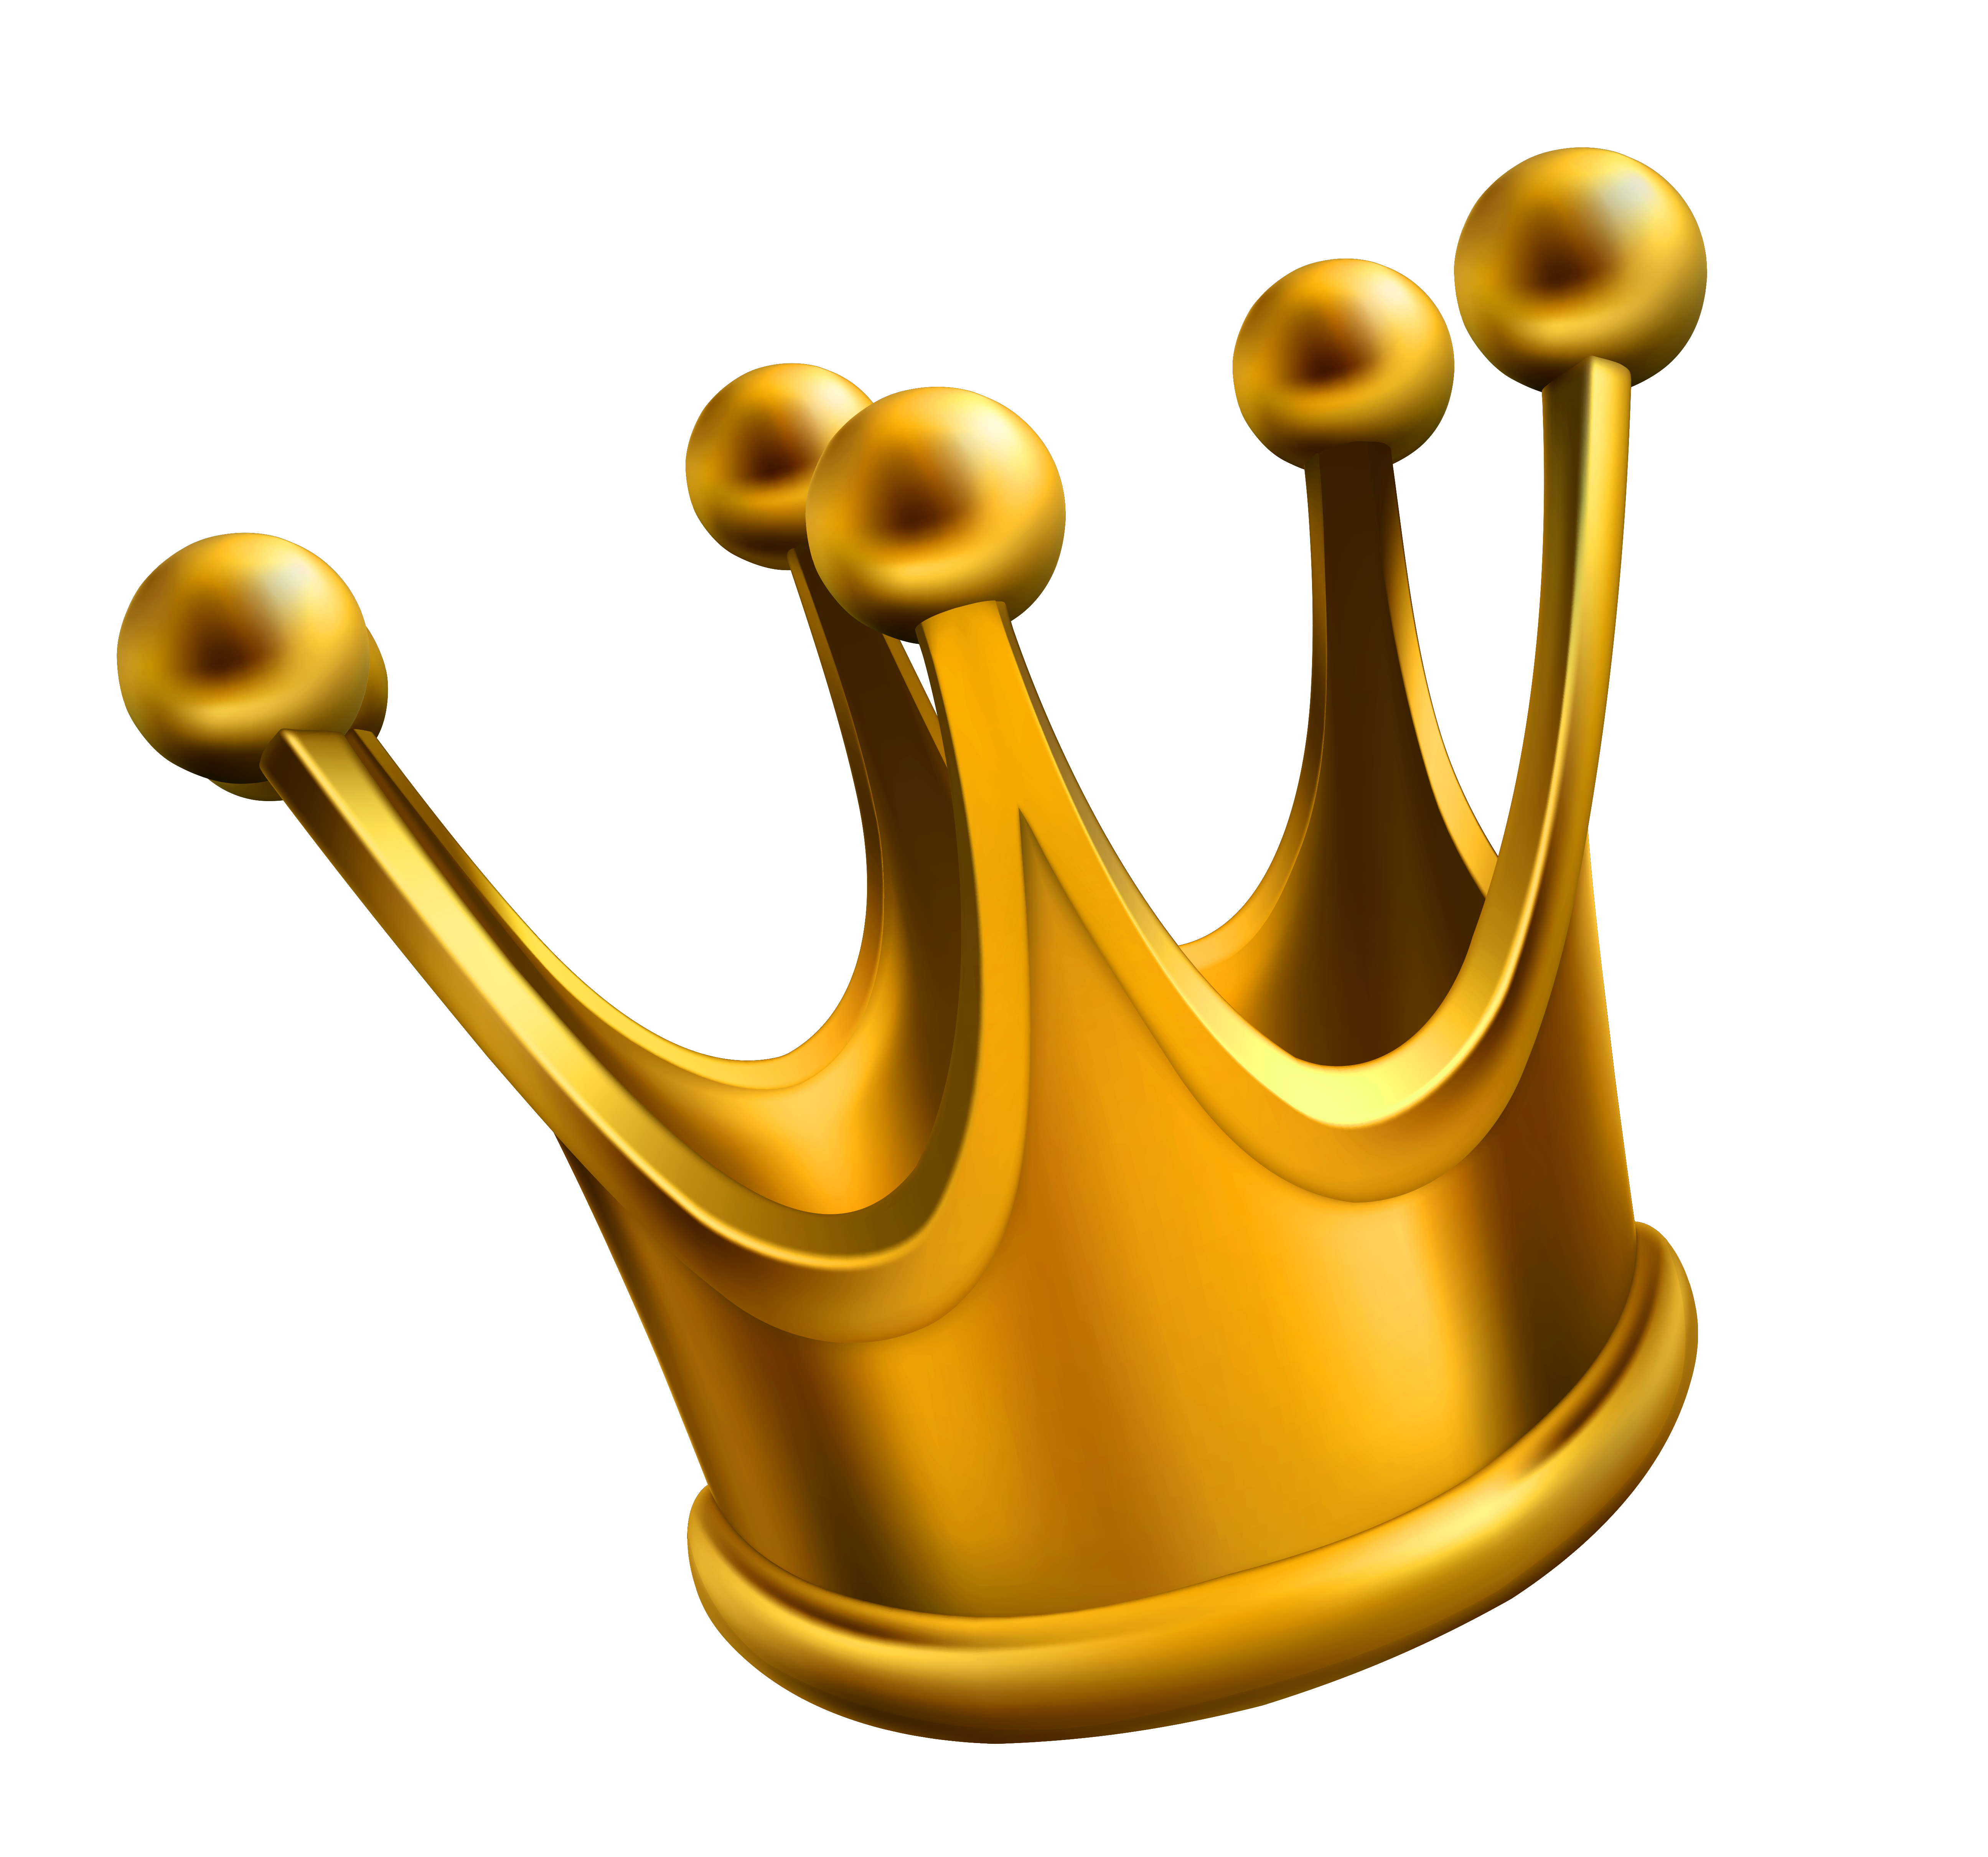 crown clipart png - photo #7